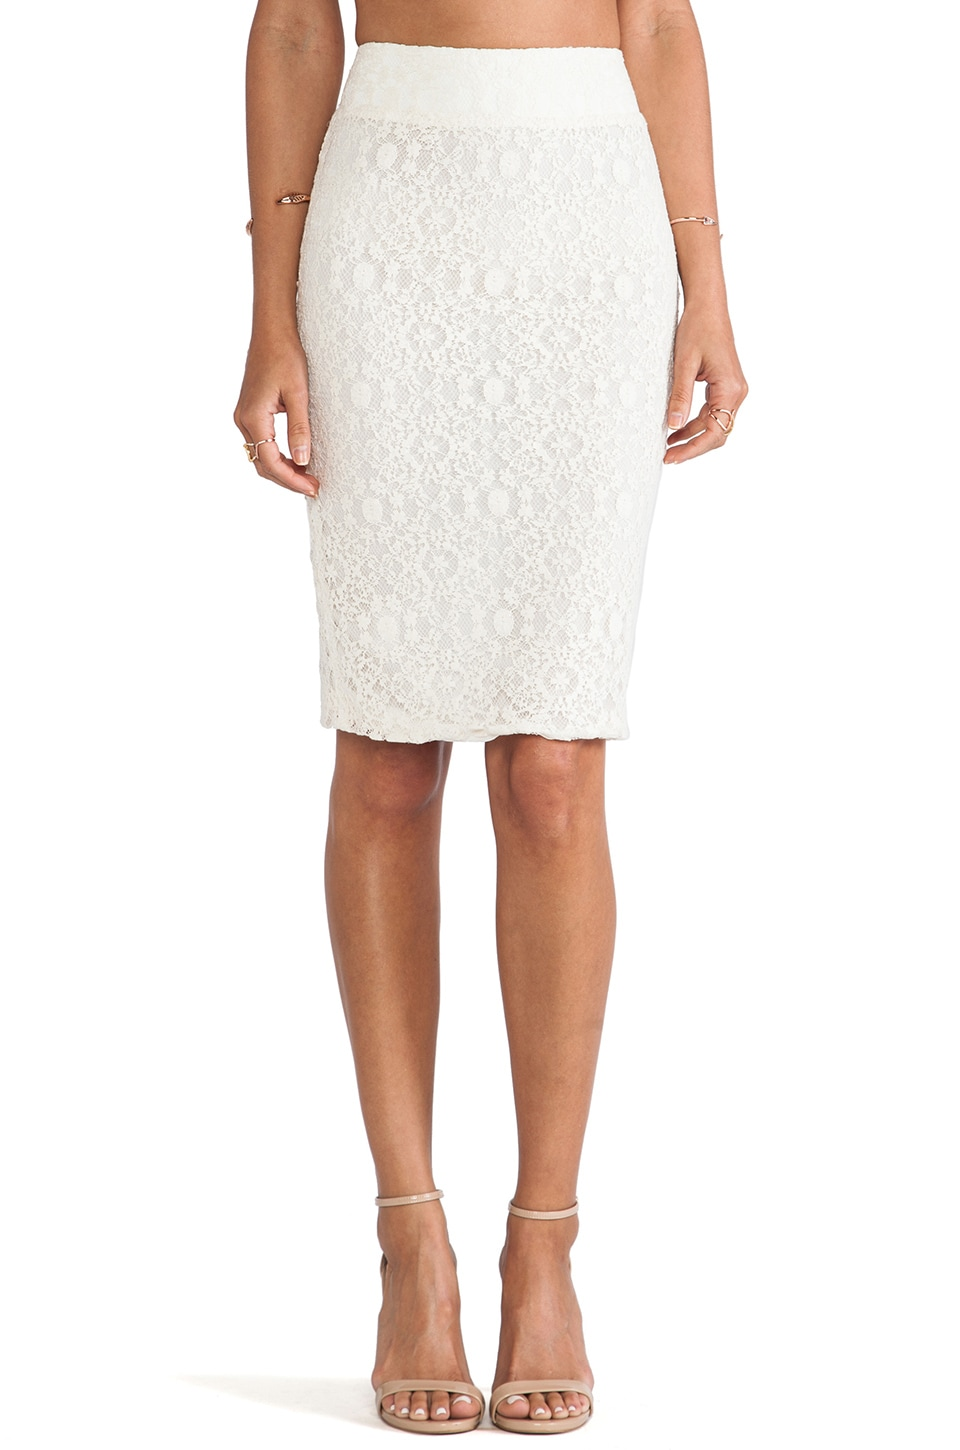 Boulee Monica Skirt in Ivory Lace